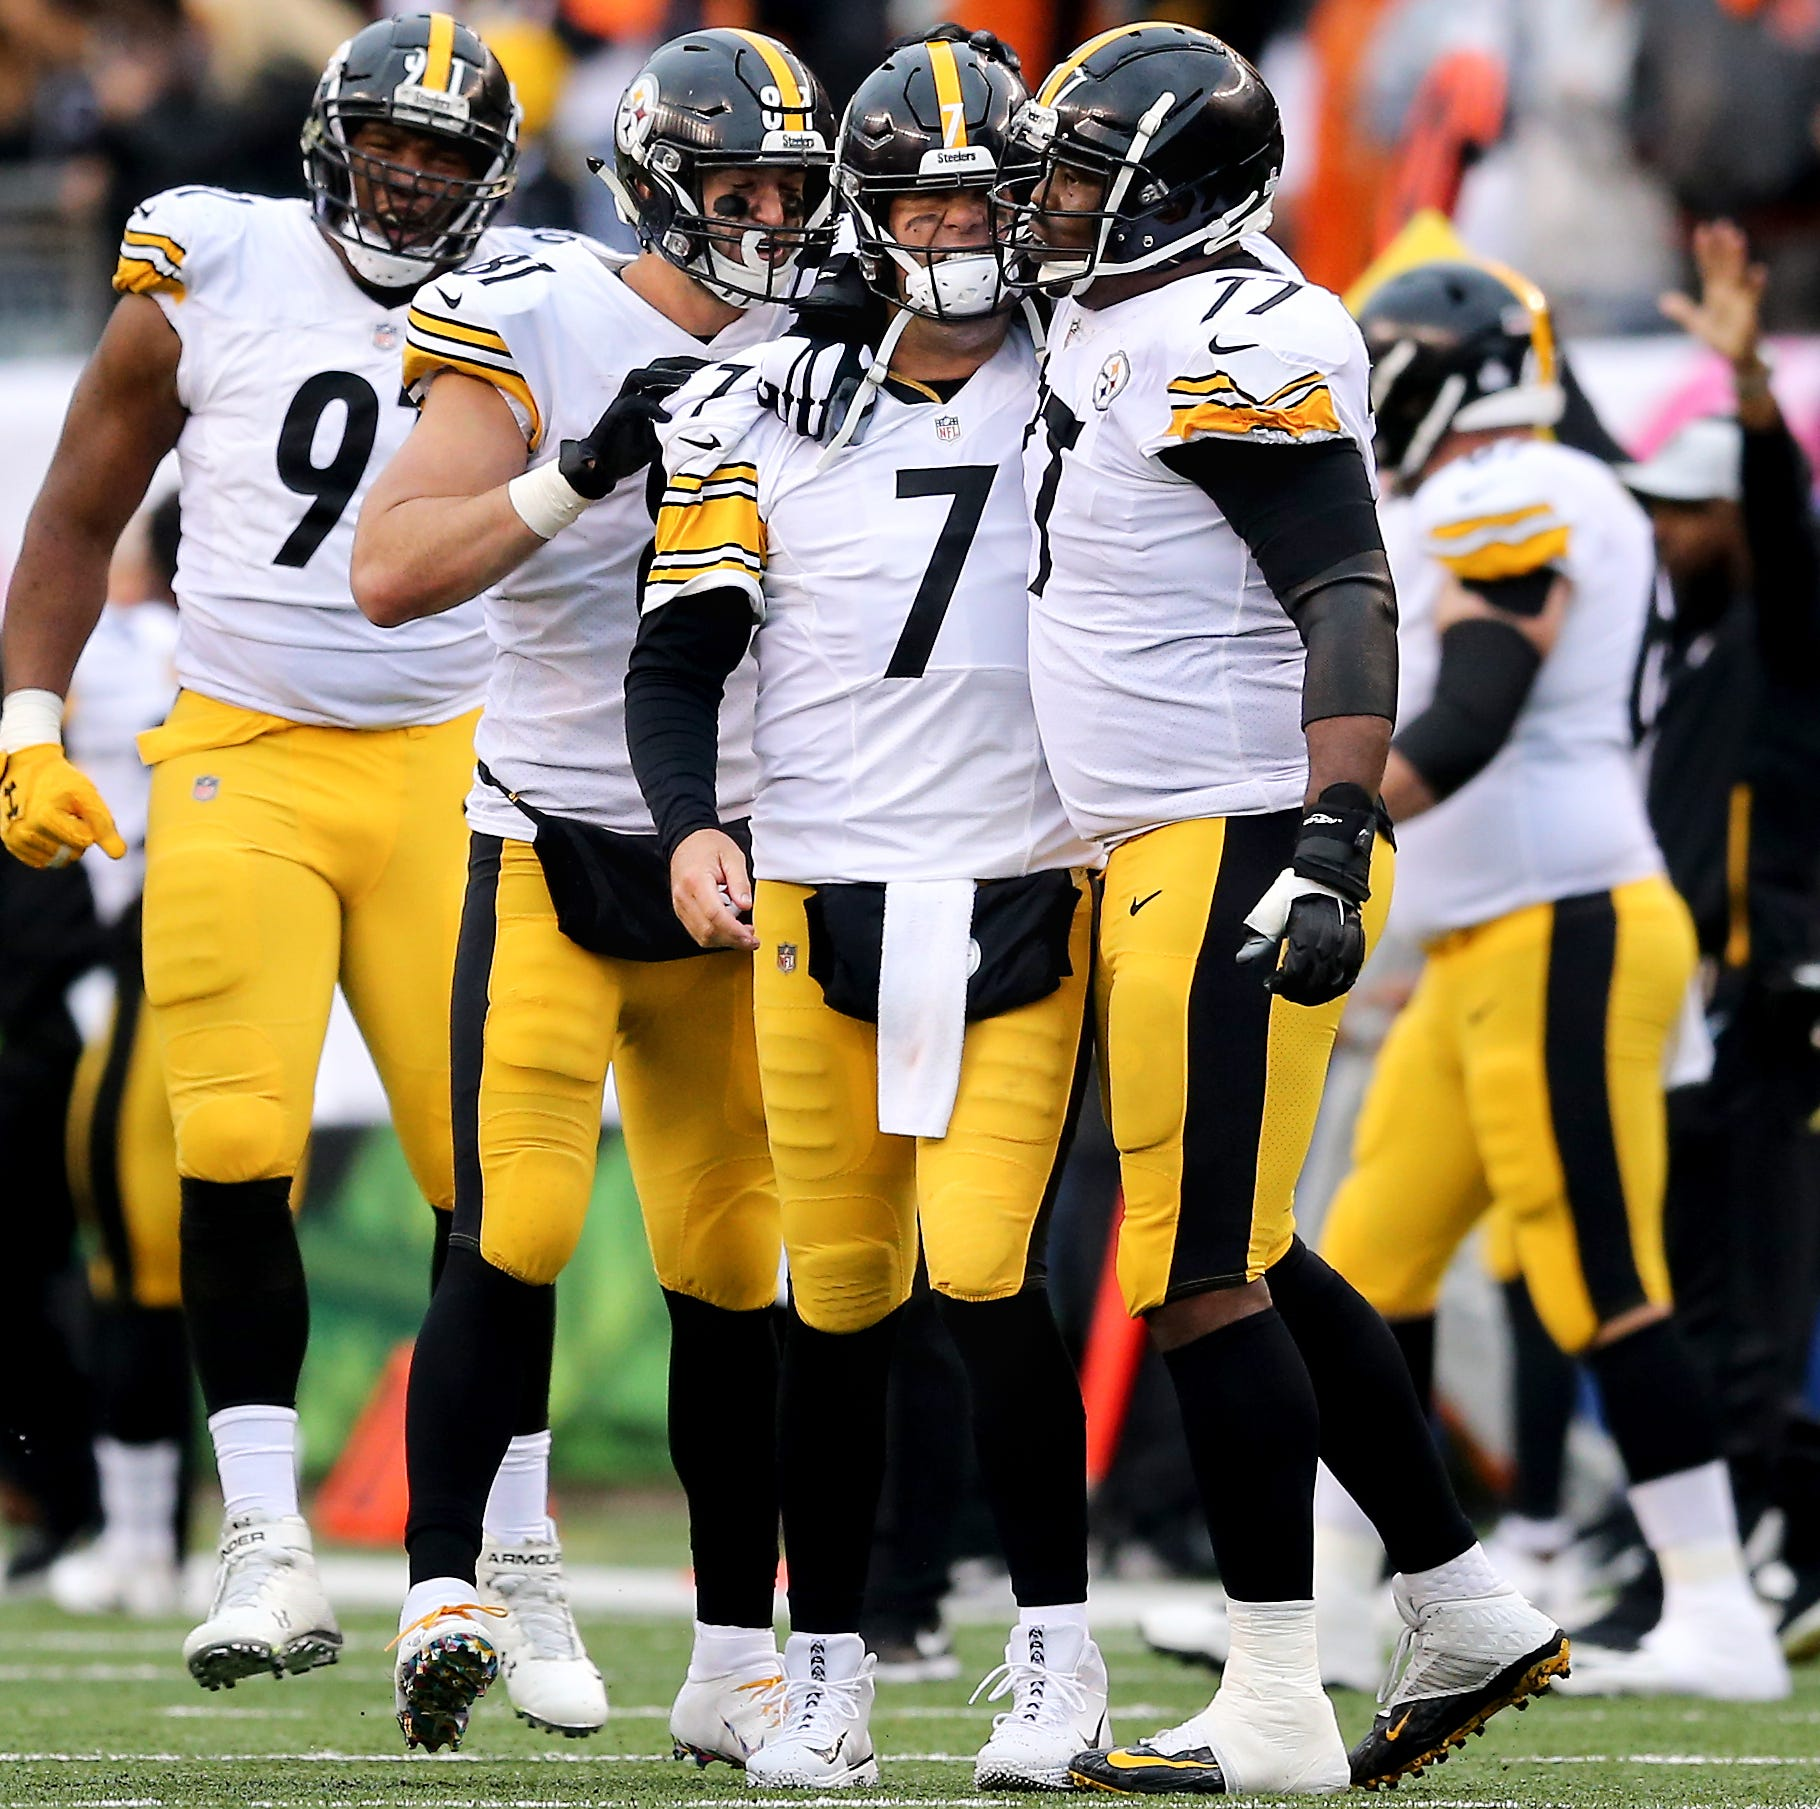 Paul Daugherty: Ben Roethlisberger, Pittsburgh Steelers did what they do best – beat the Cincinnati Bengals